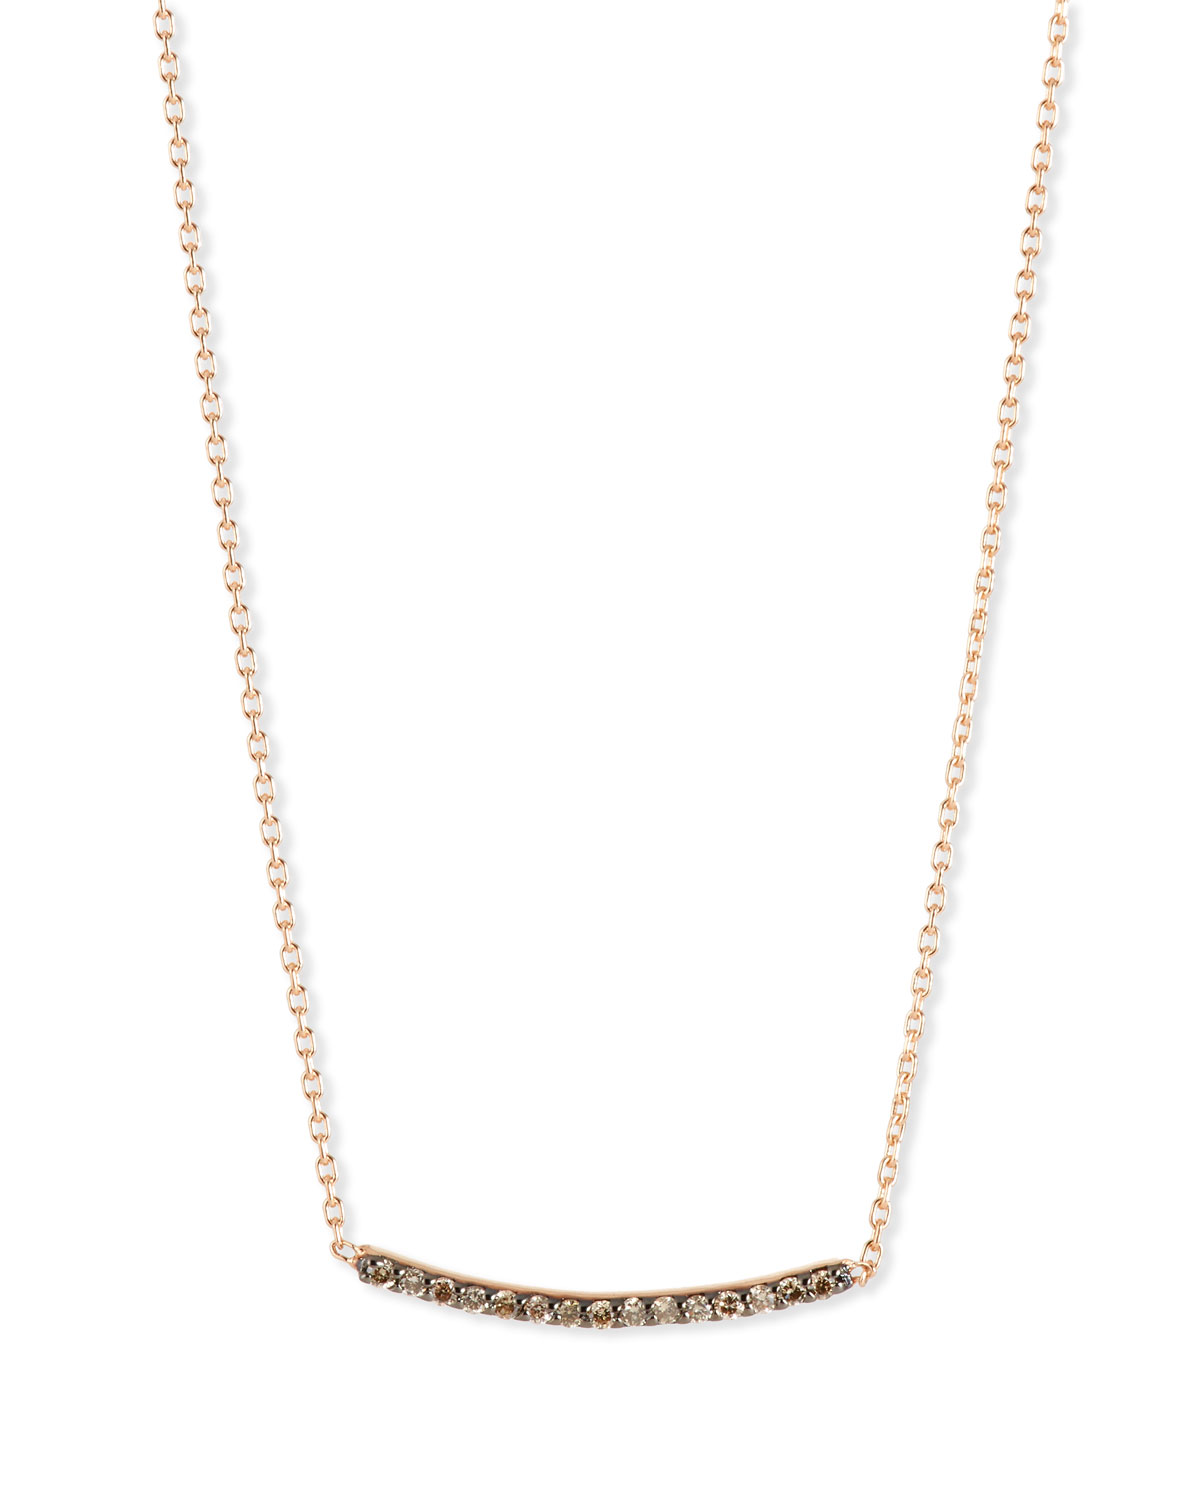 KISMET BY MILKA LUMIERE 14K ROSE GOLD & CHAMPAGNE DIAMOND BAR NECKLACE